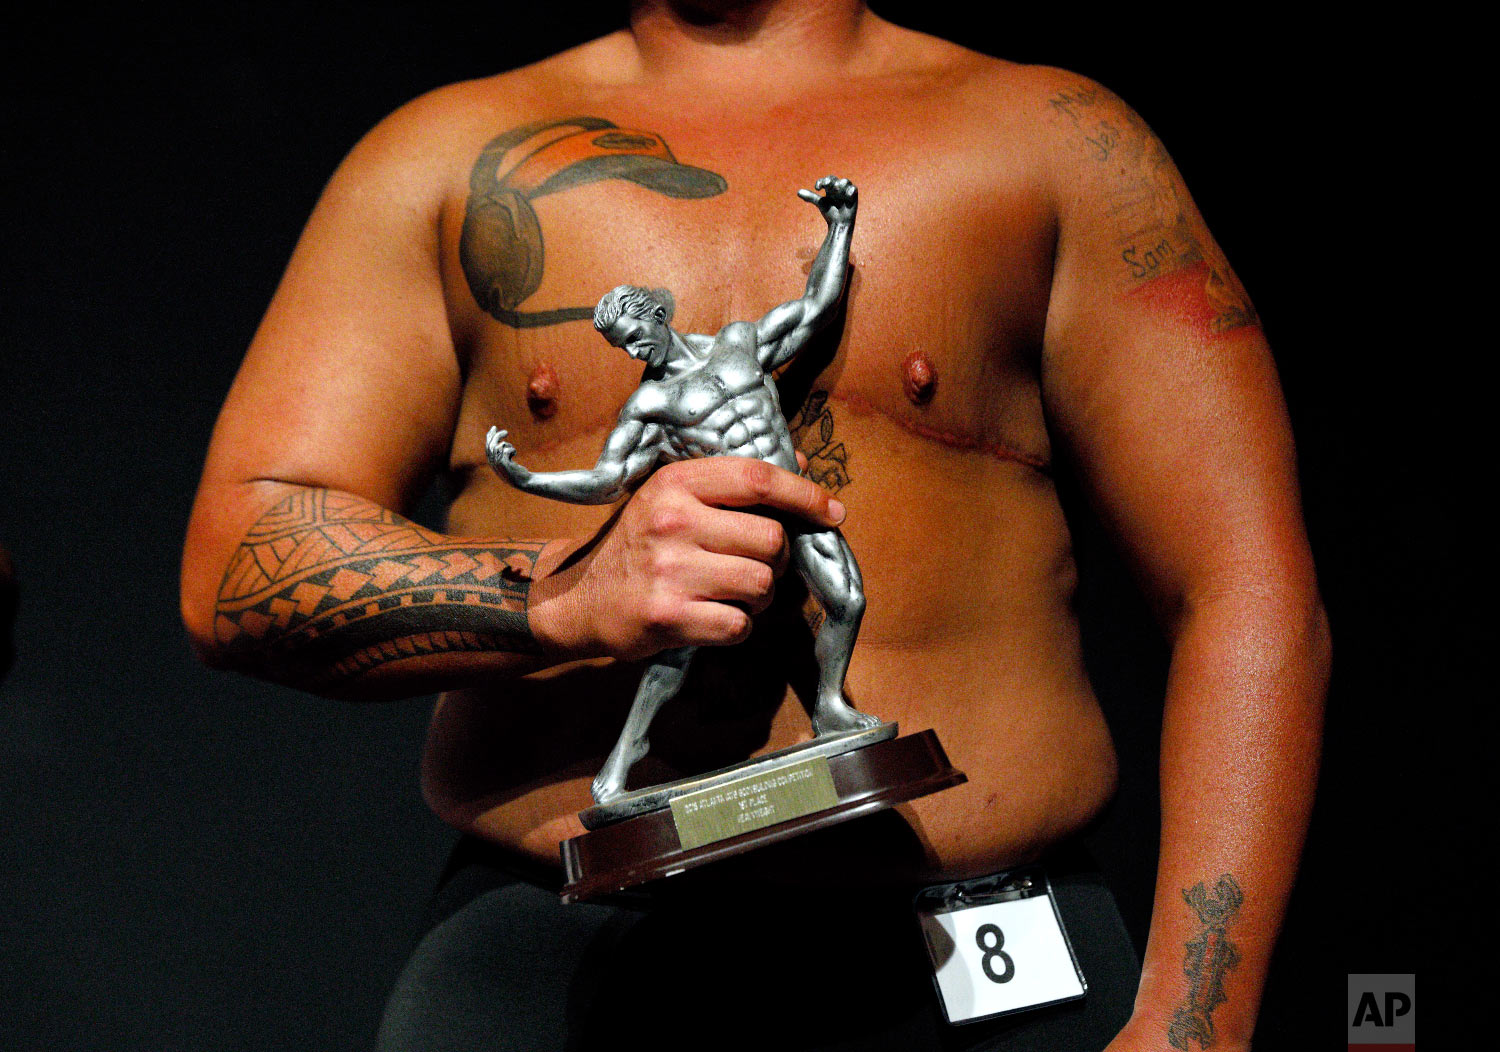 Kennedy Conners, of Conyers, Ga., who transitioned from female a year and half ago, holds his trophy after winning the heavyweight class in the International Association of Trans Bodybuilders competition in Atlanta, Oct. 6, 2018. (AP Photo/David Goldman)